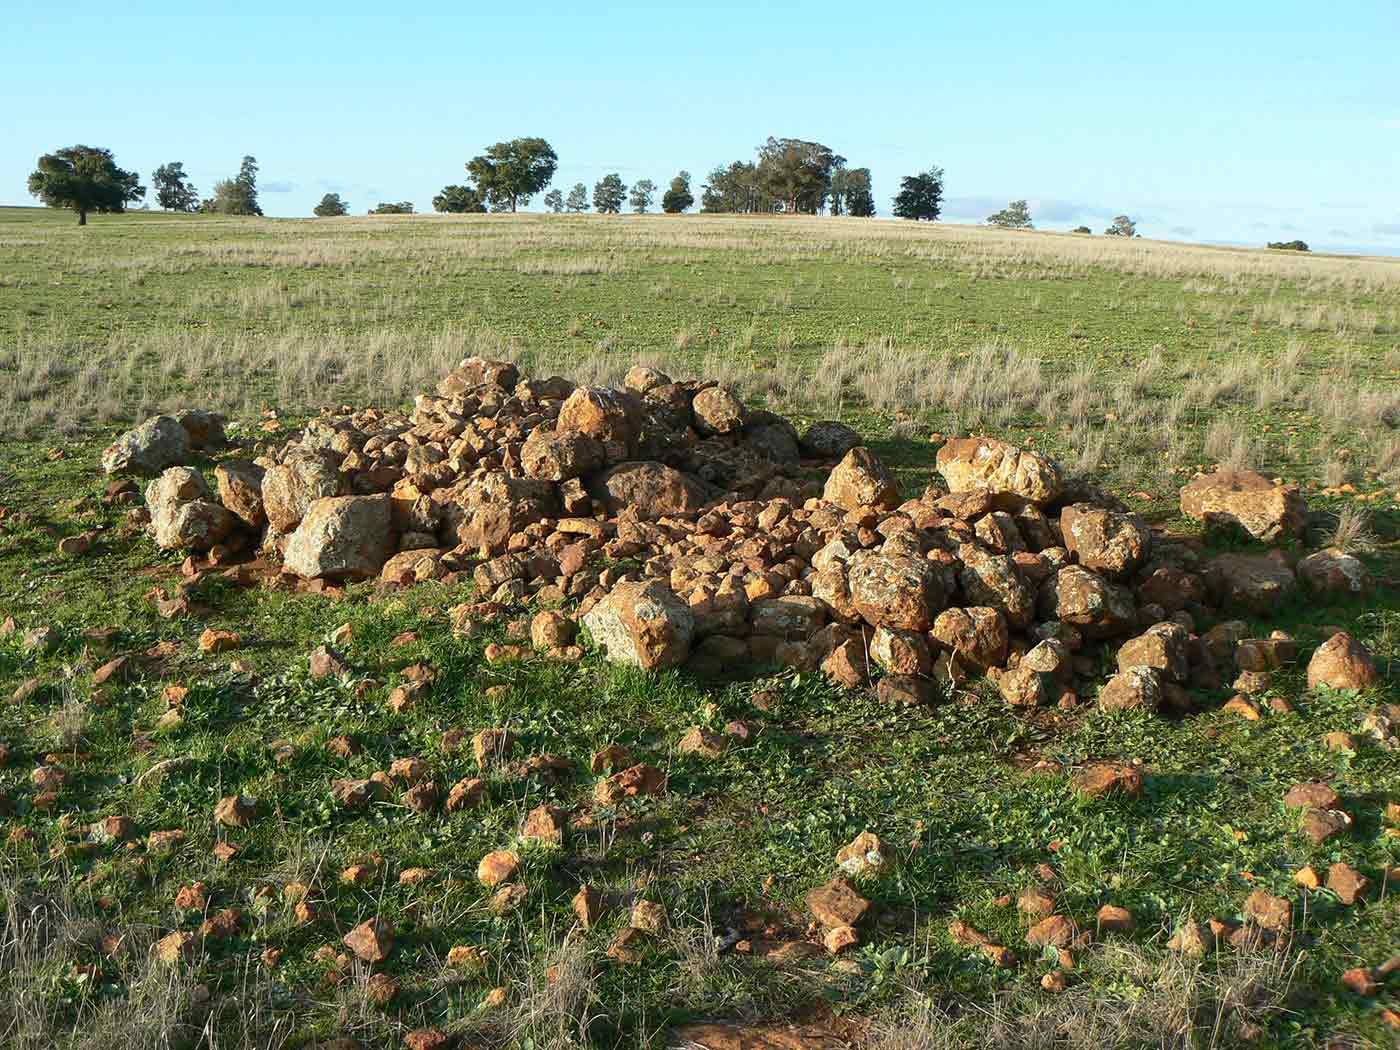 A pile of rocks in a grassy paddock.